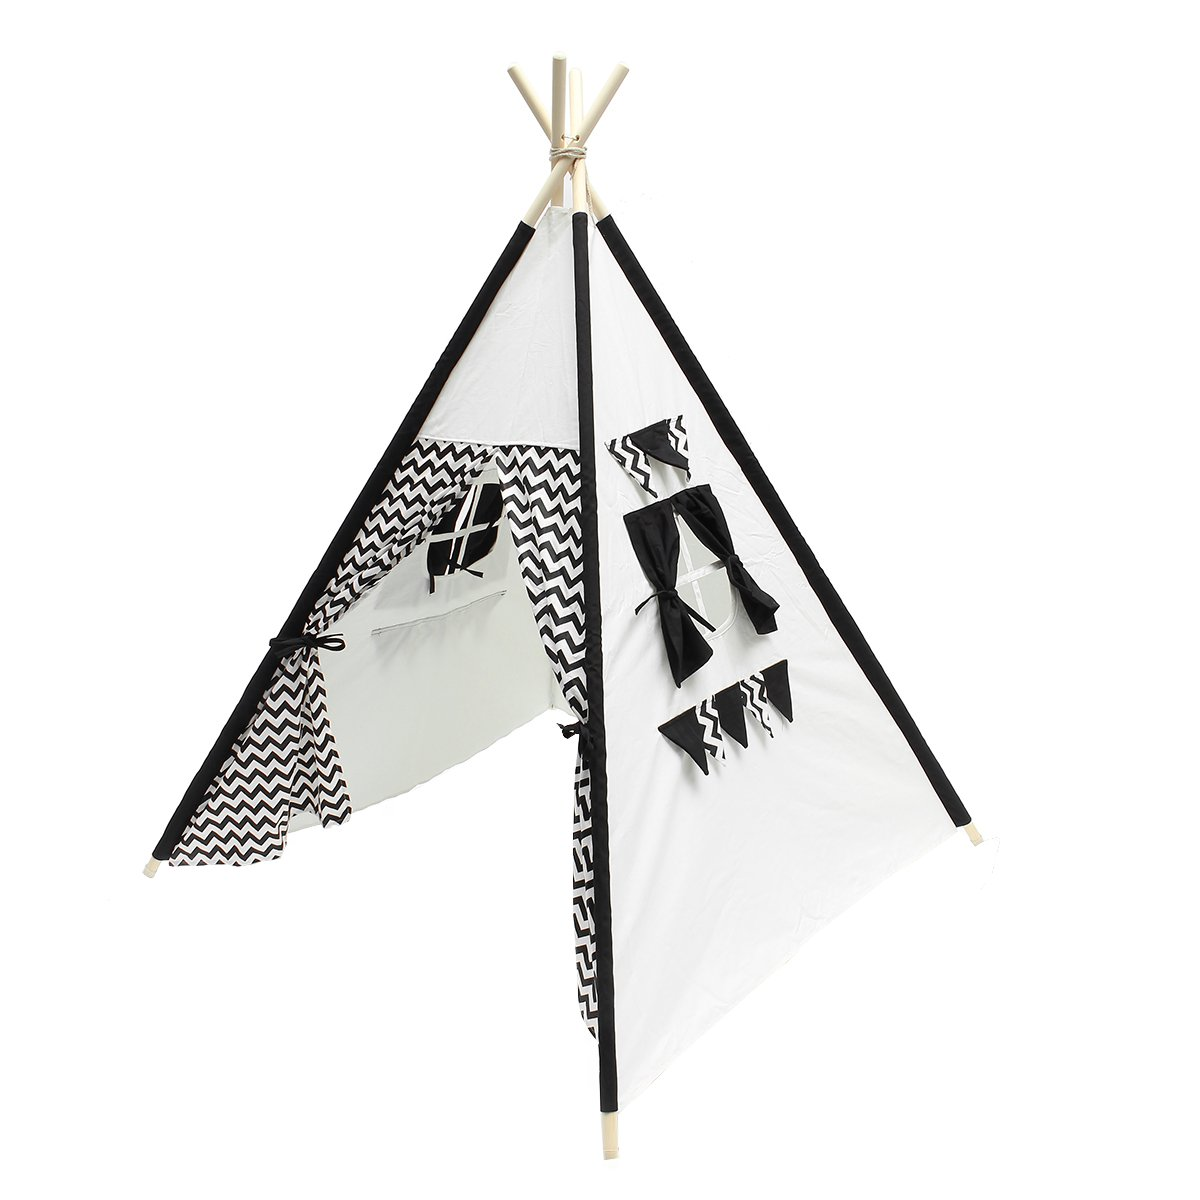 Premium, Deluxe Kids Teepee Tent Waves Canvas Kid Teepee Children Home Game Toy Play Tent Cubby for Toddler Children to Read and Play at Hide and Seek,Black/White